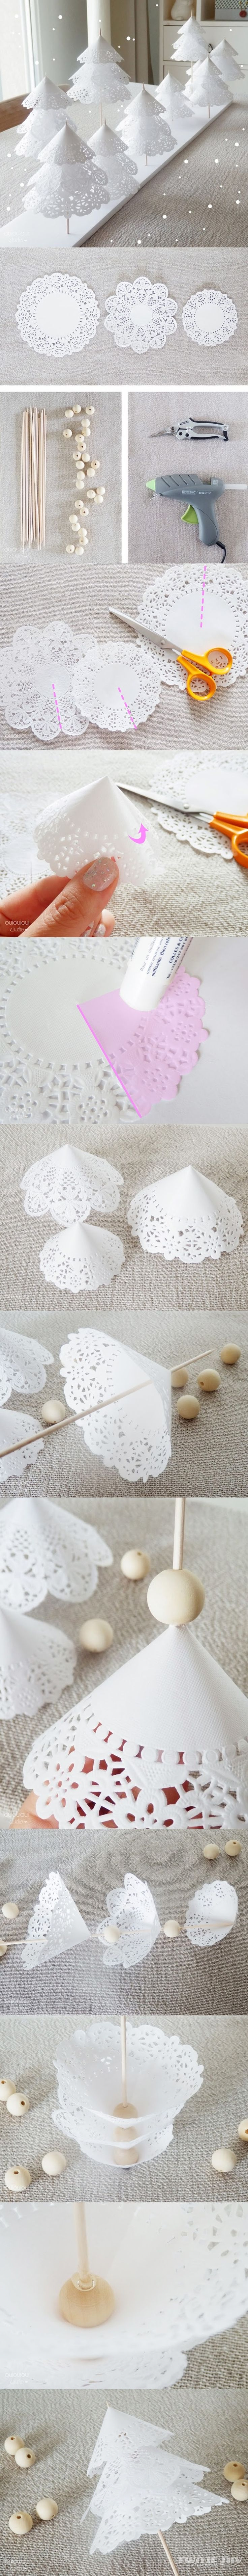 DIY Christmas tree with paper doilies